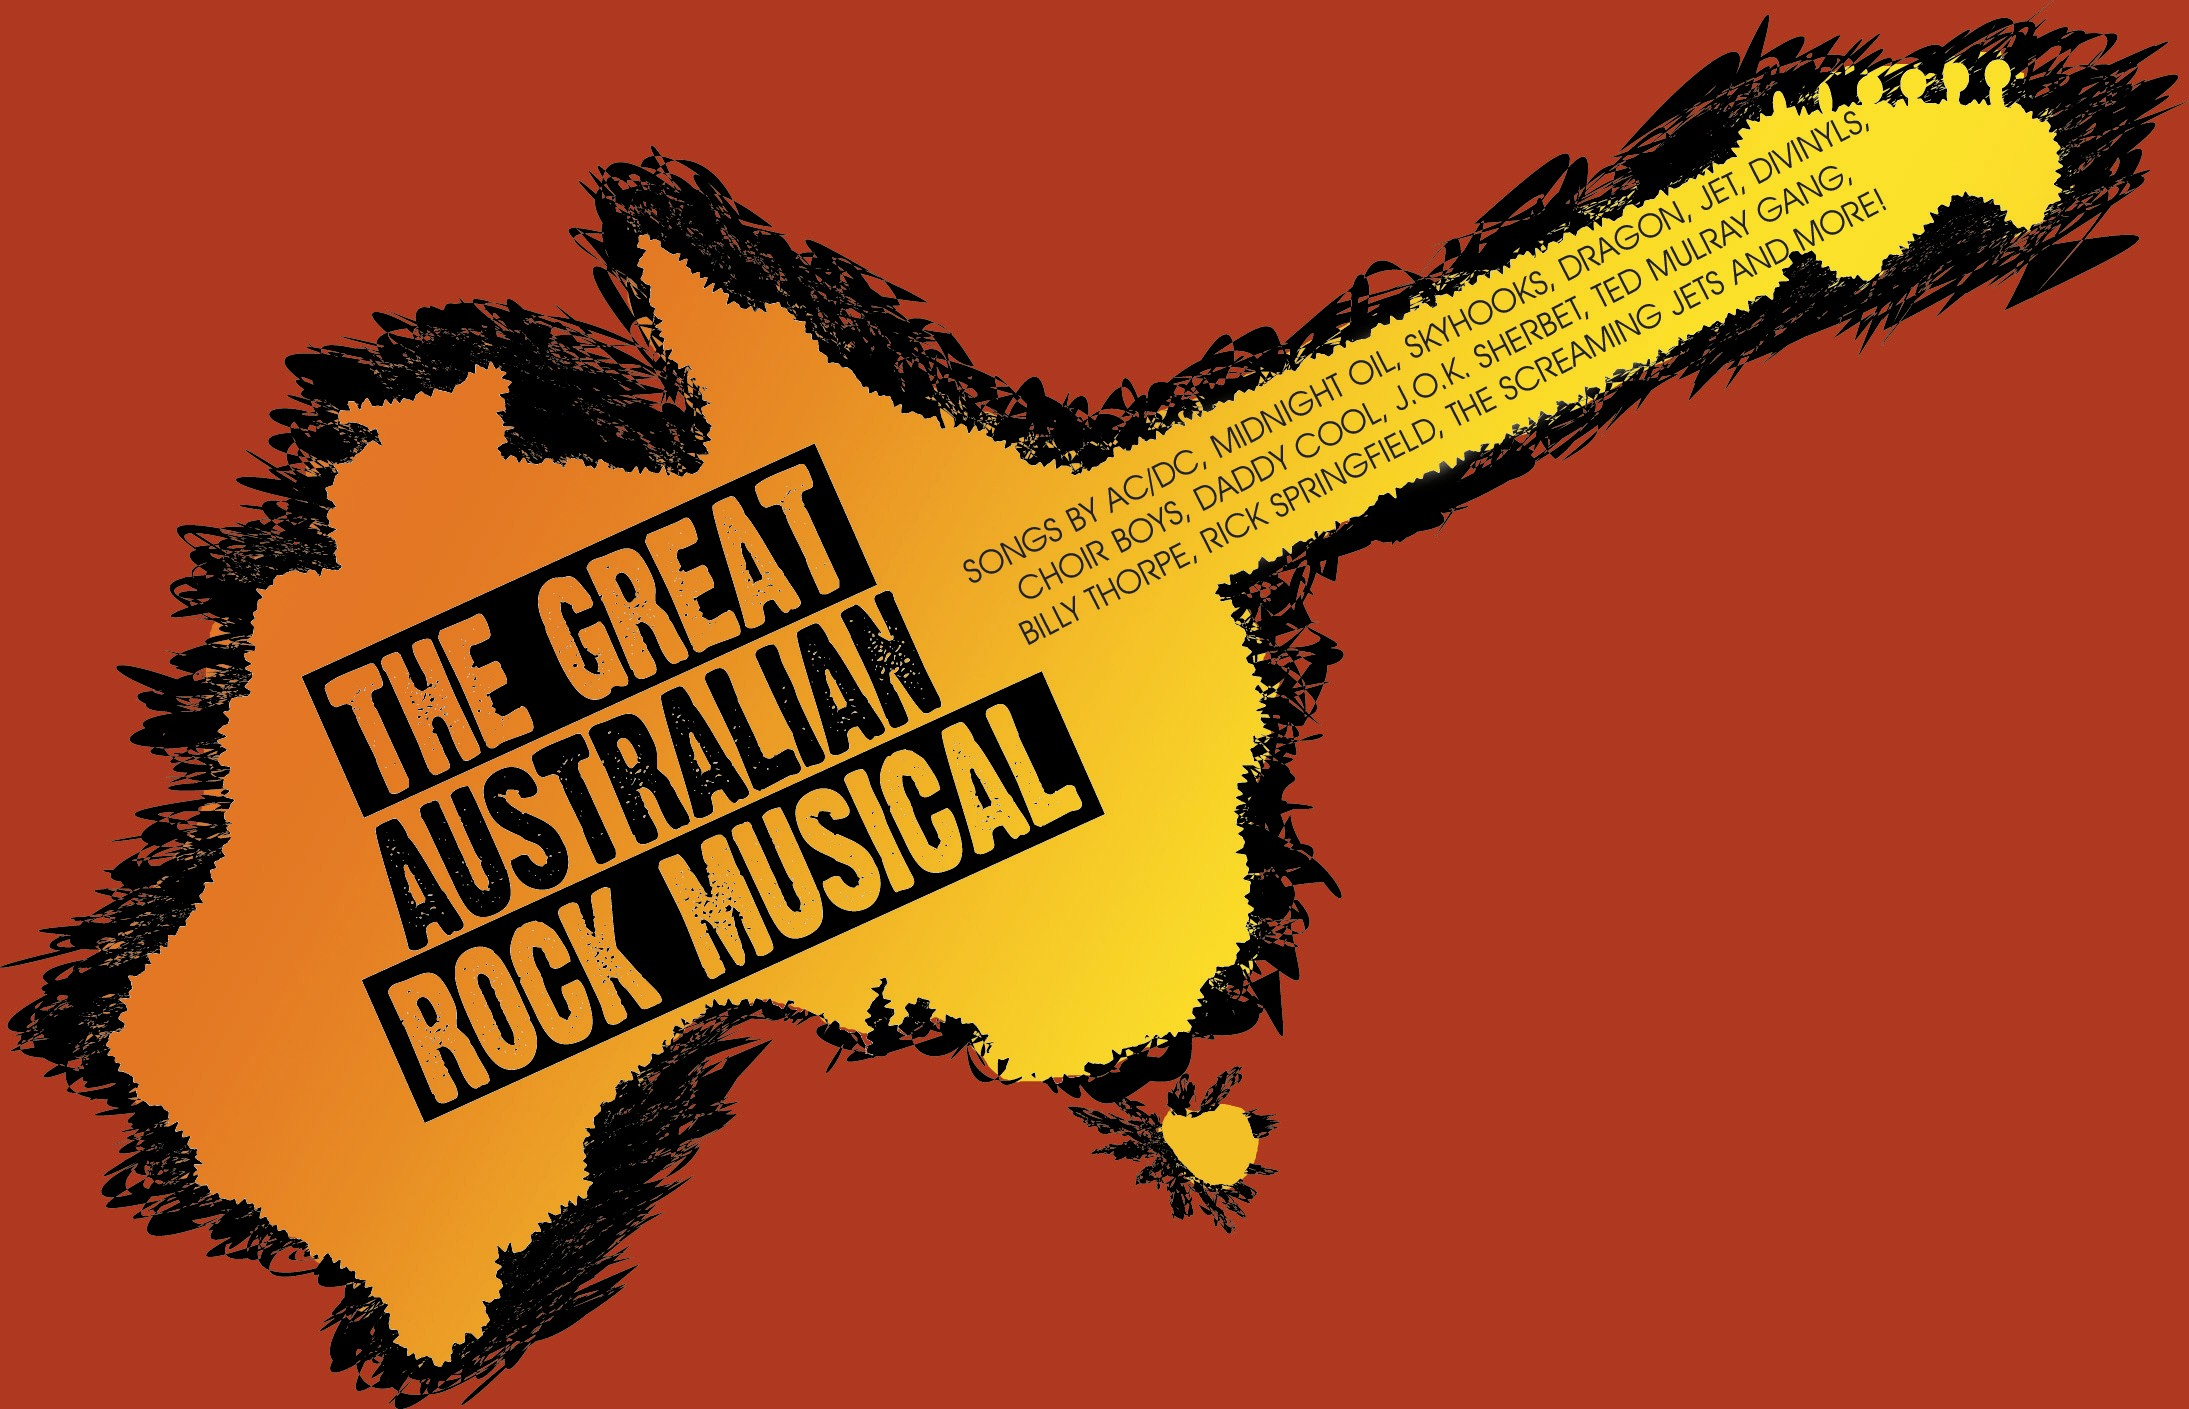 The Great Australian Rock Musical